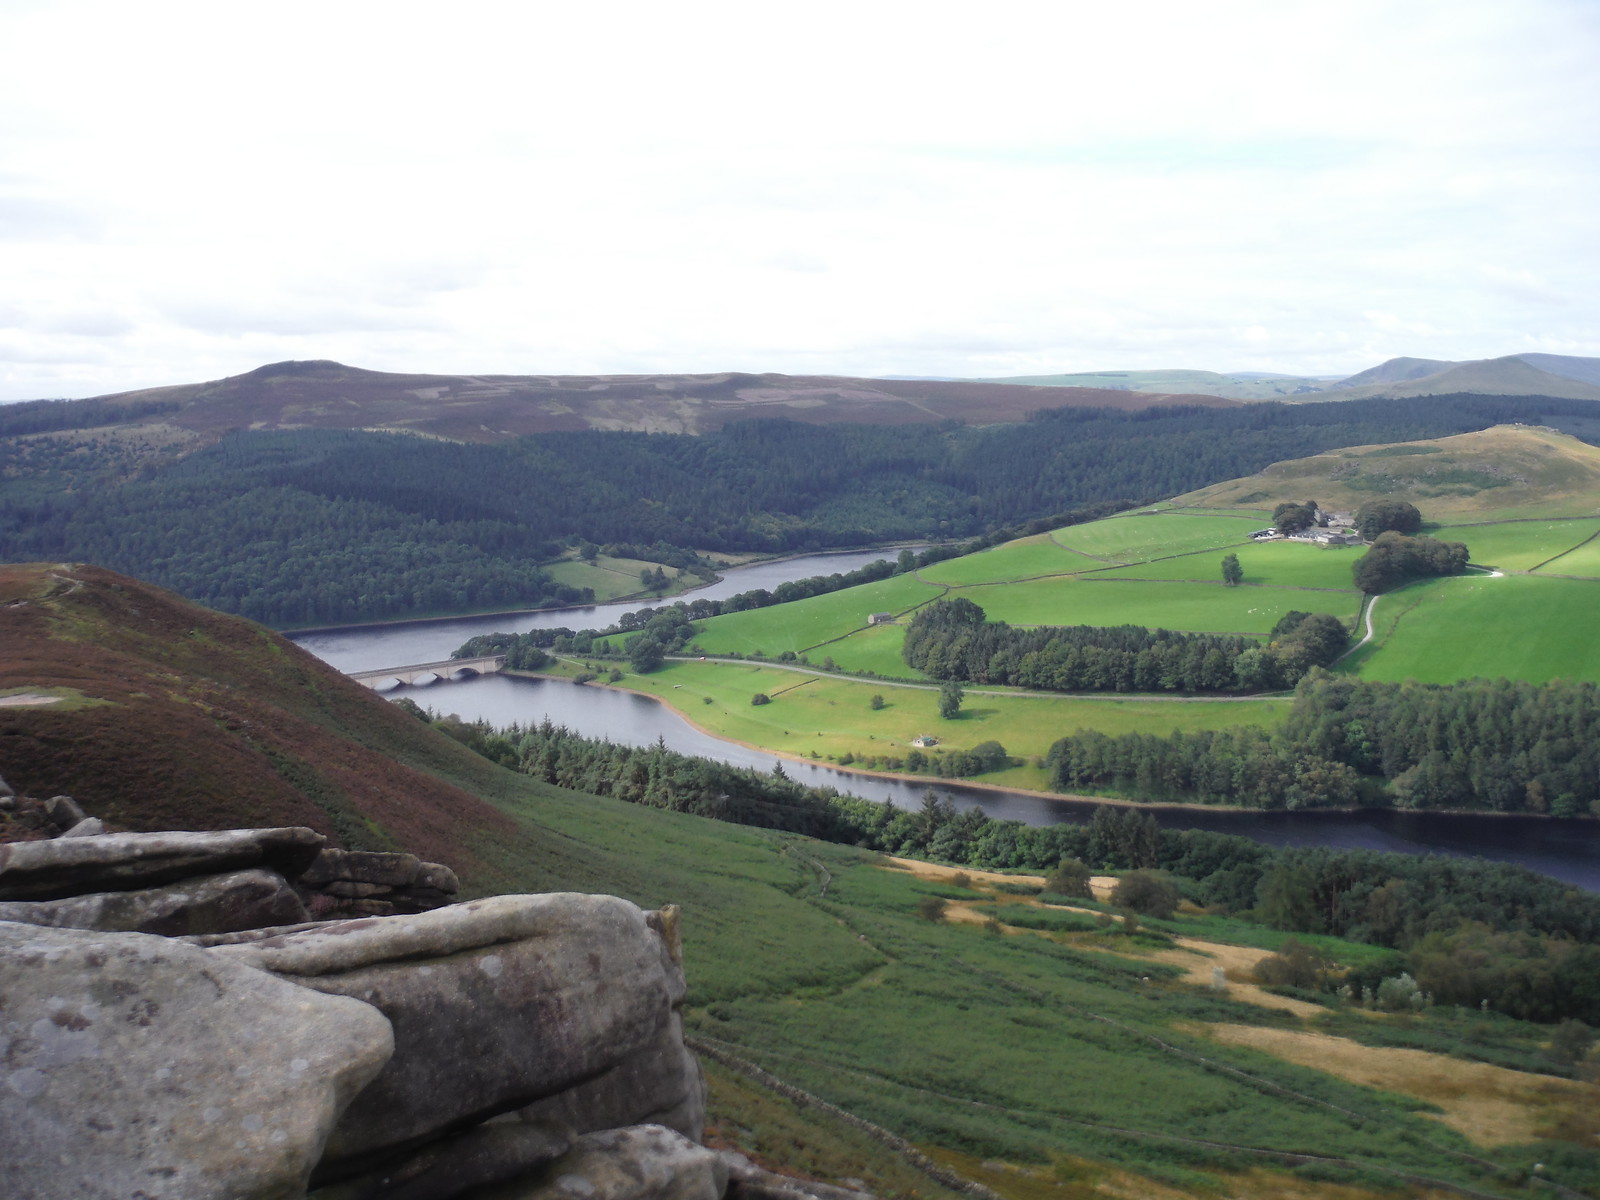 Ladybower Reservoir, Woodlands Valley, Win Hill. From top of Whinstone Lee Tor SWC Walk 348 - Ladybower Inn Circular (via Derwent Edges and Strines)